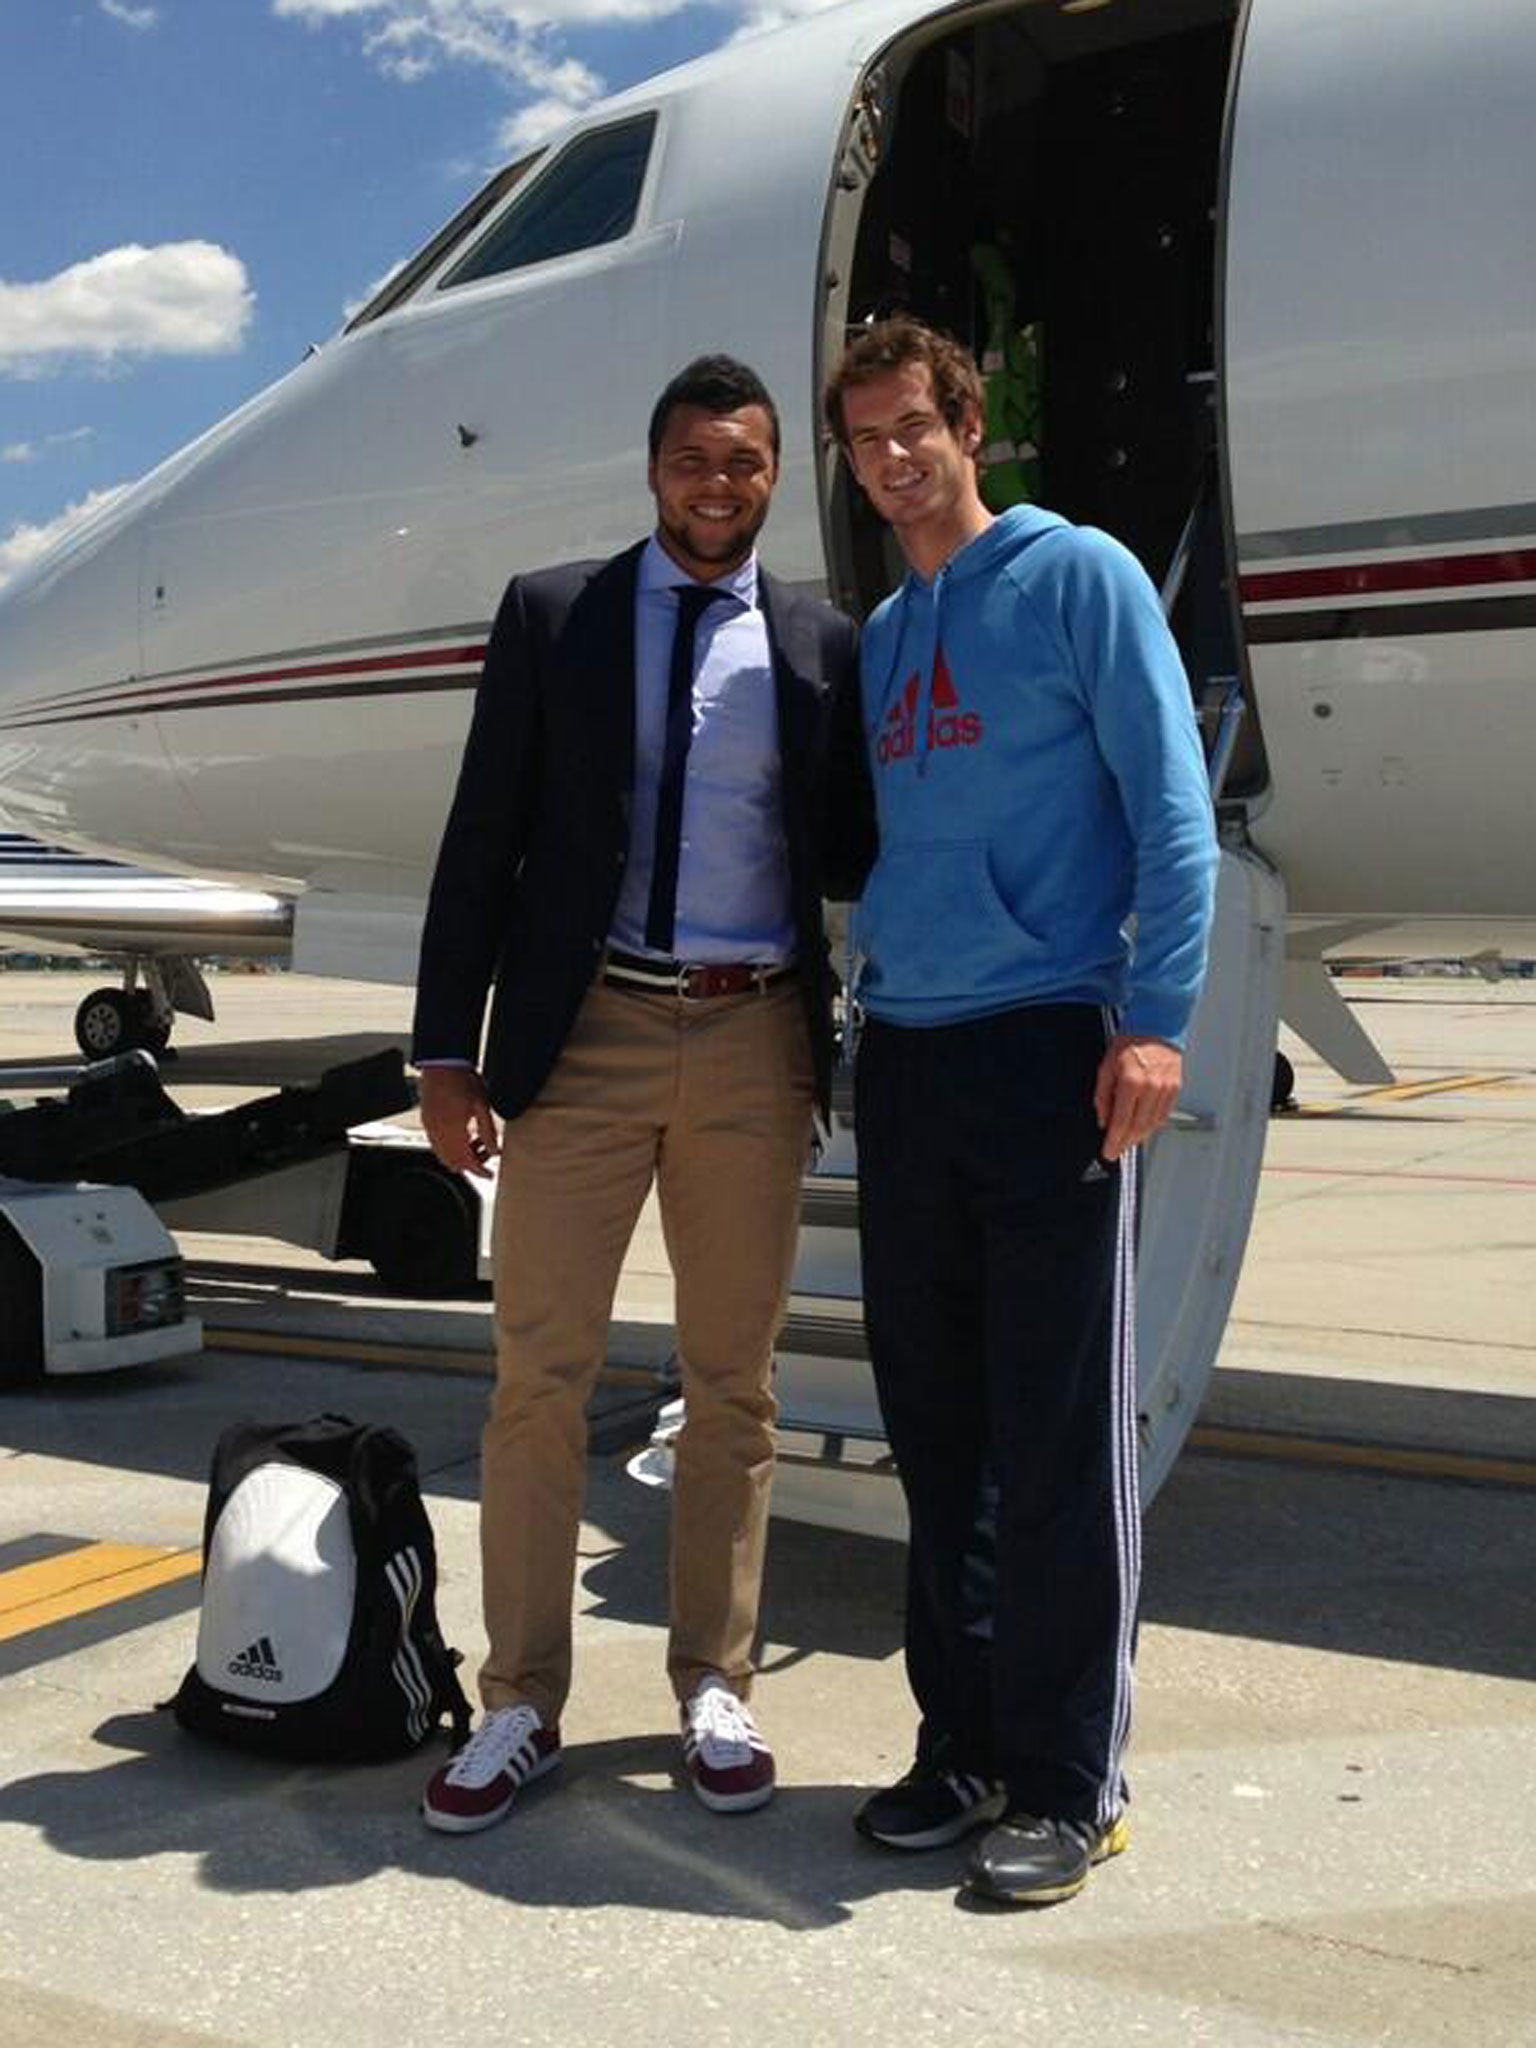 Andy Murray Joins The Jet Set In Attempt To Conquer Rome